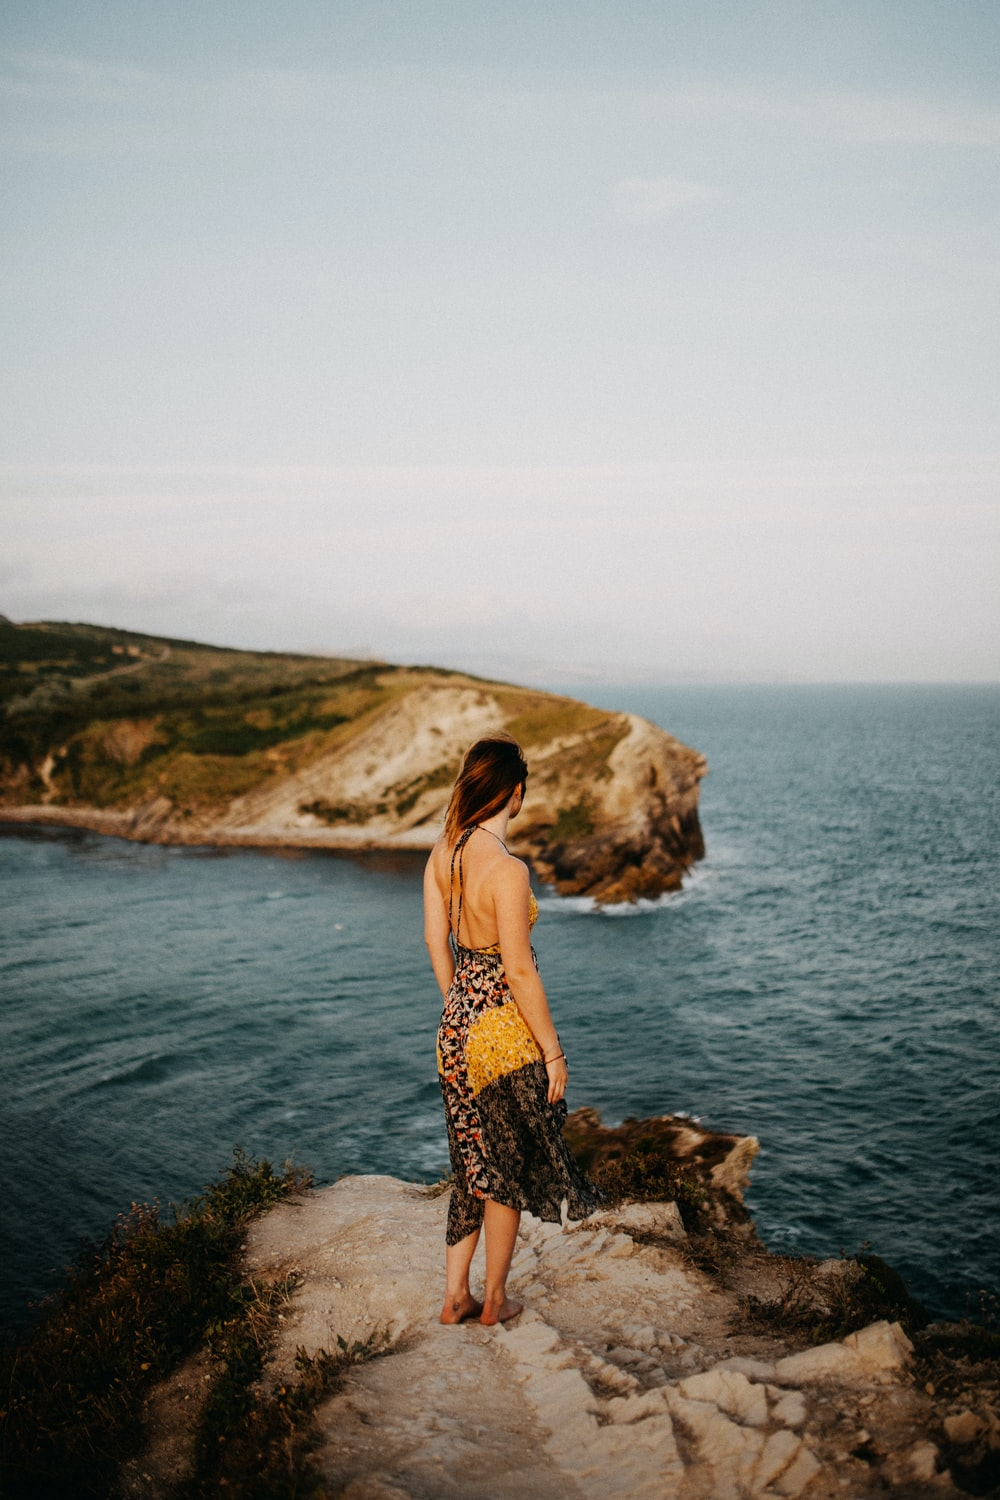 woman in black and brown floral dress standing on rock formation near body of water during